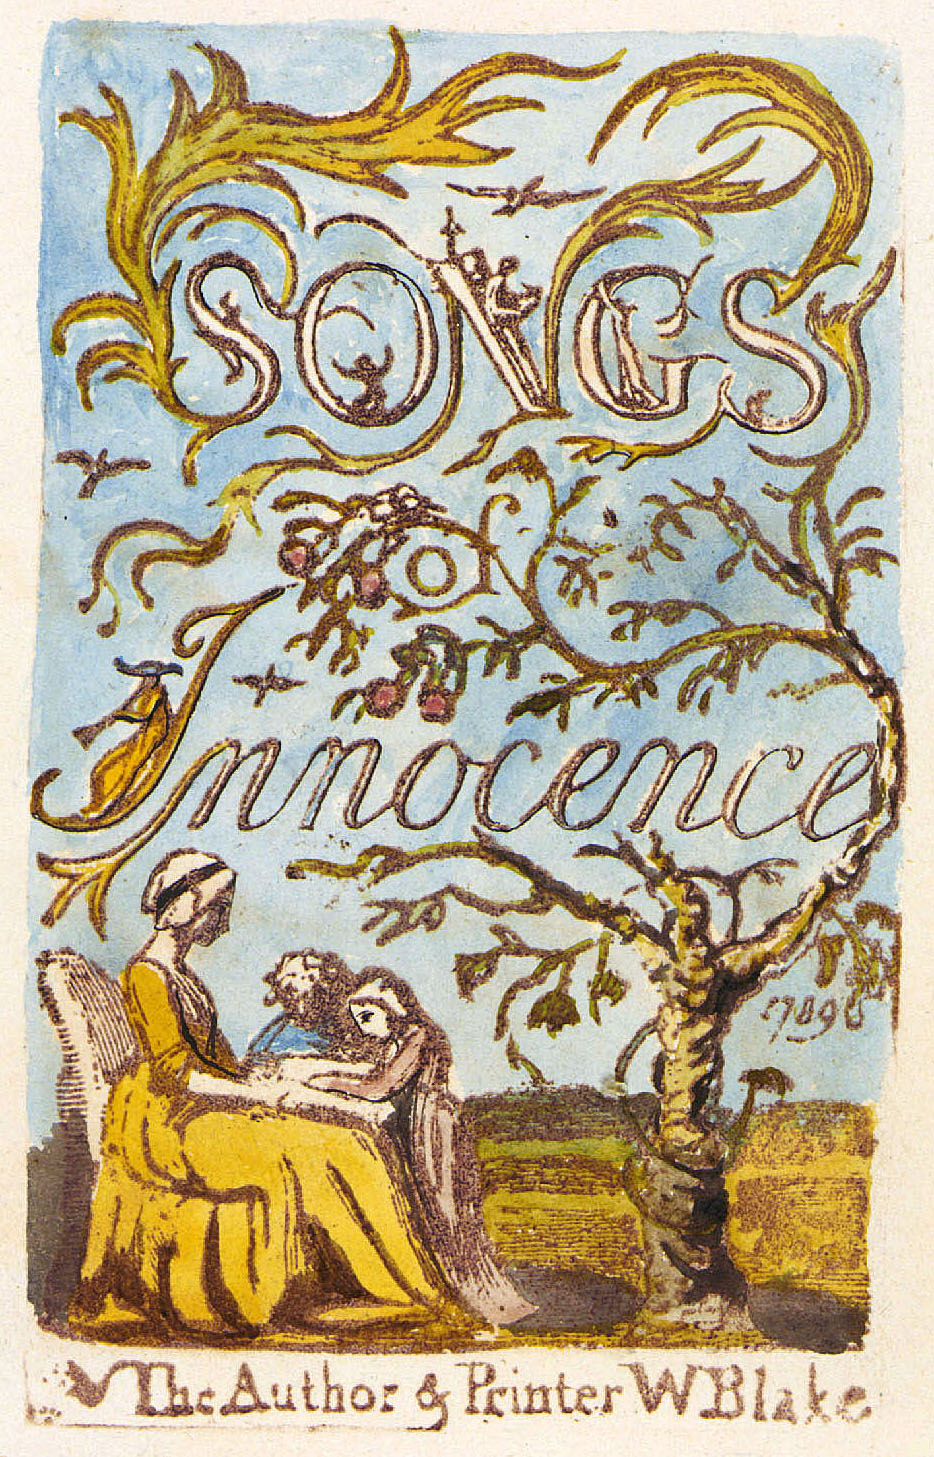 an analysis of two poems by william blake the lamb from the songs of innocence and the tyger from th Essay on william blake songs of innocence essay the lamb by william blake analysis this paper is focusing on five poems from the songs of innocence.